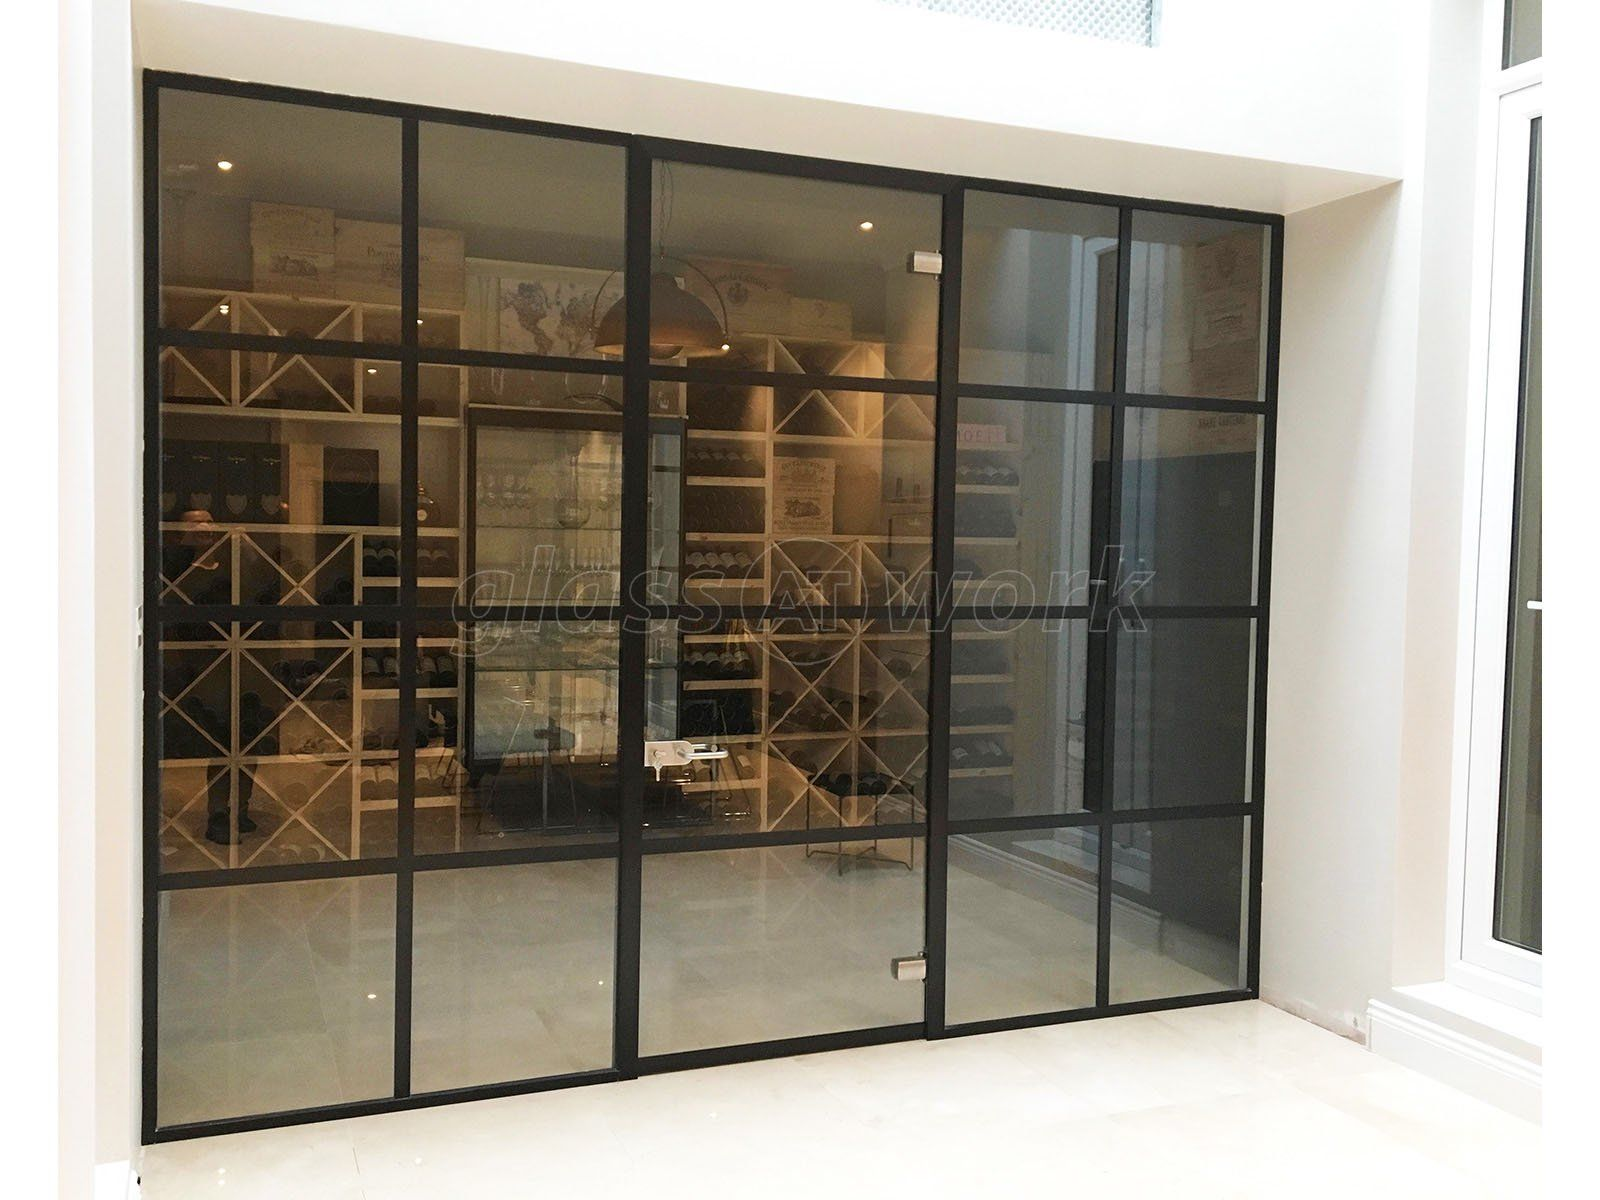 Black Framed Industrial Factory Style Glass Partition Wall Door For A Domestic Project In Fulham London Glass Partition Wall Partition Wall Glass Partition Domestic room divider walls